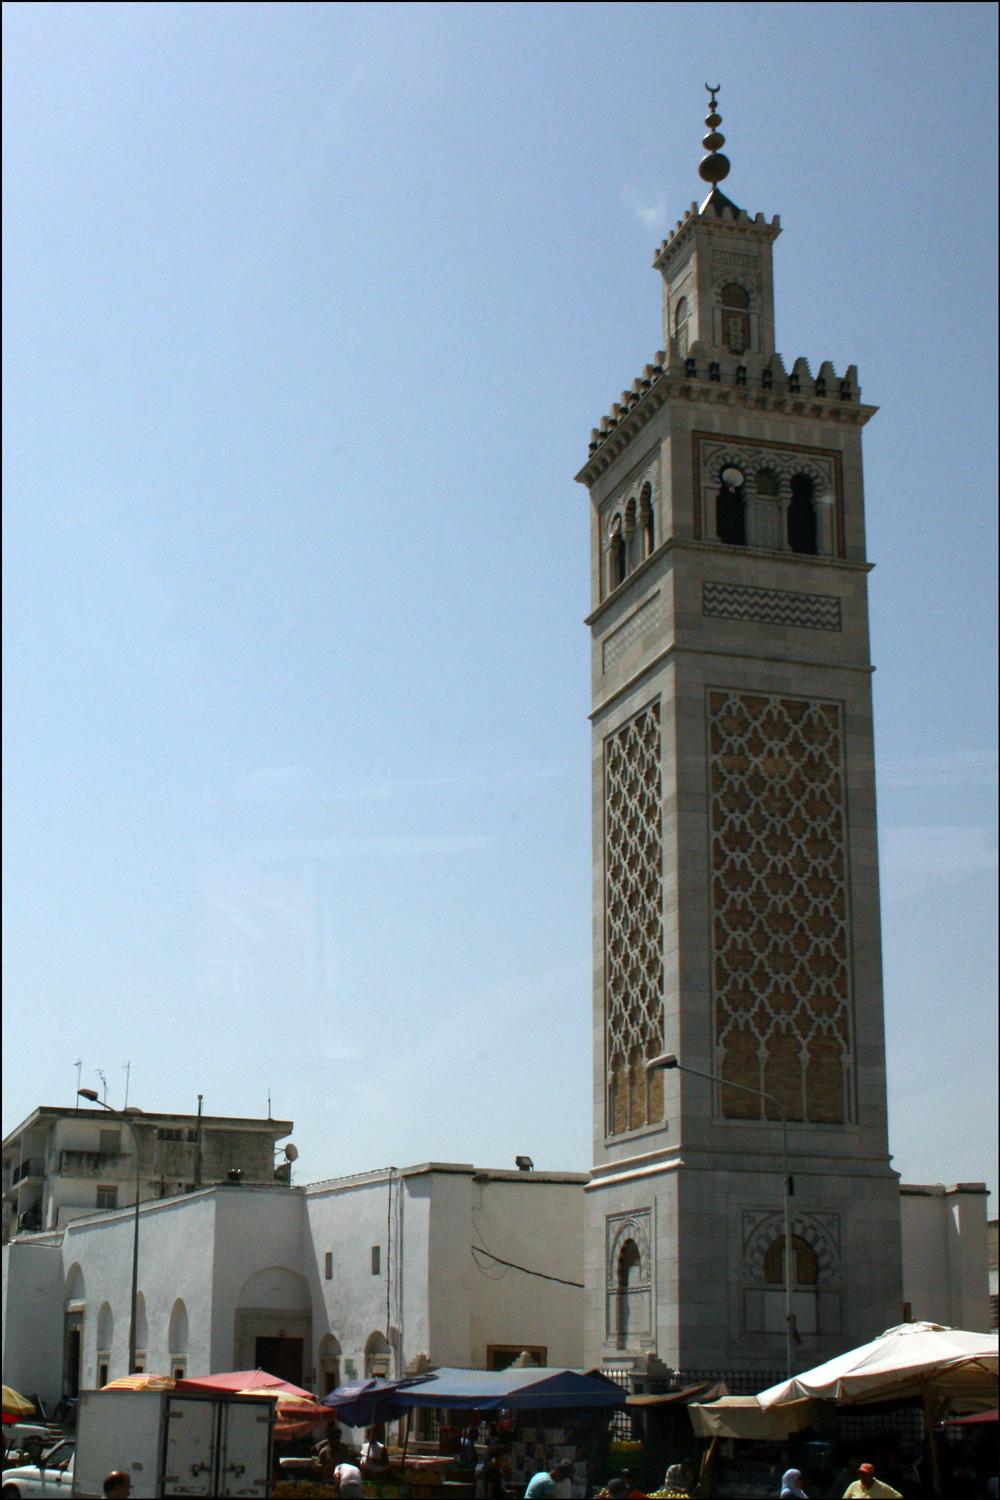 Minaret of Kasbah Mosque